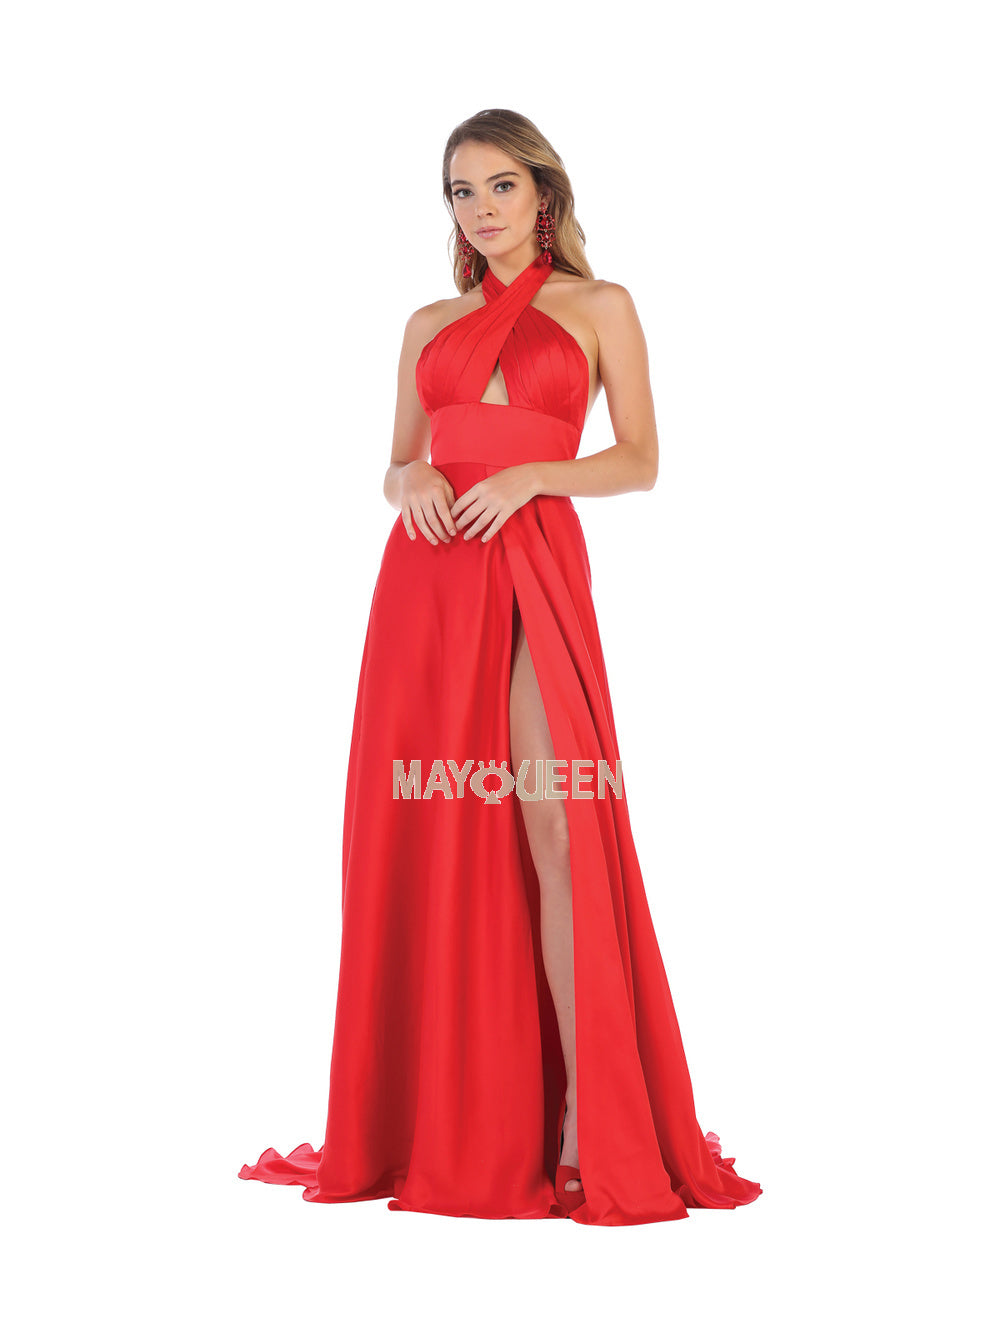 afb64622fabc Mayqueen Size Chart E MQ 1631 - Criss-Cross Wrap Halter Gown with Satin  Skirt .